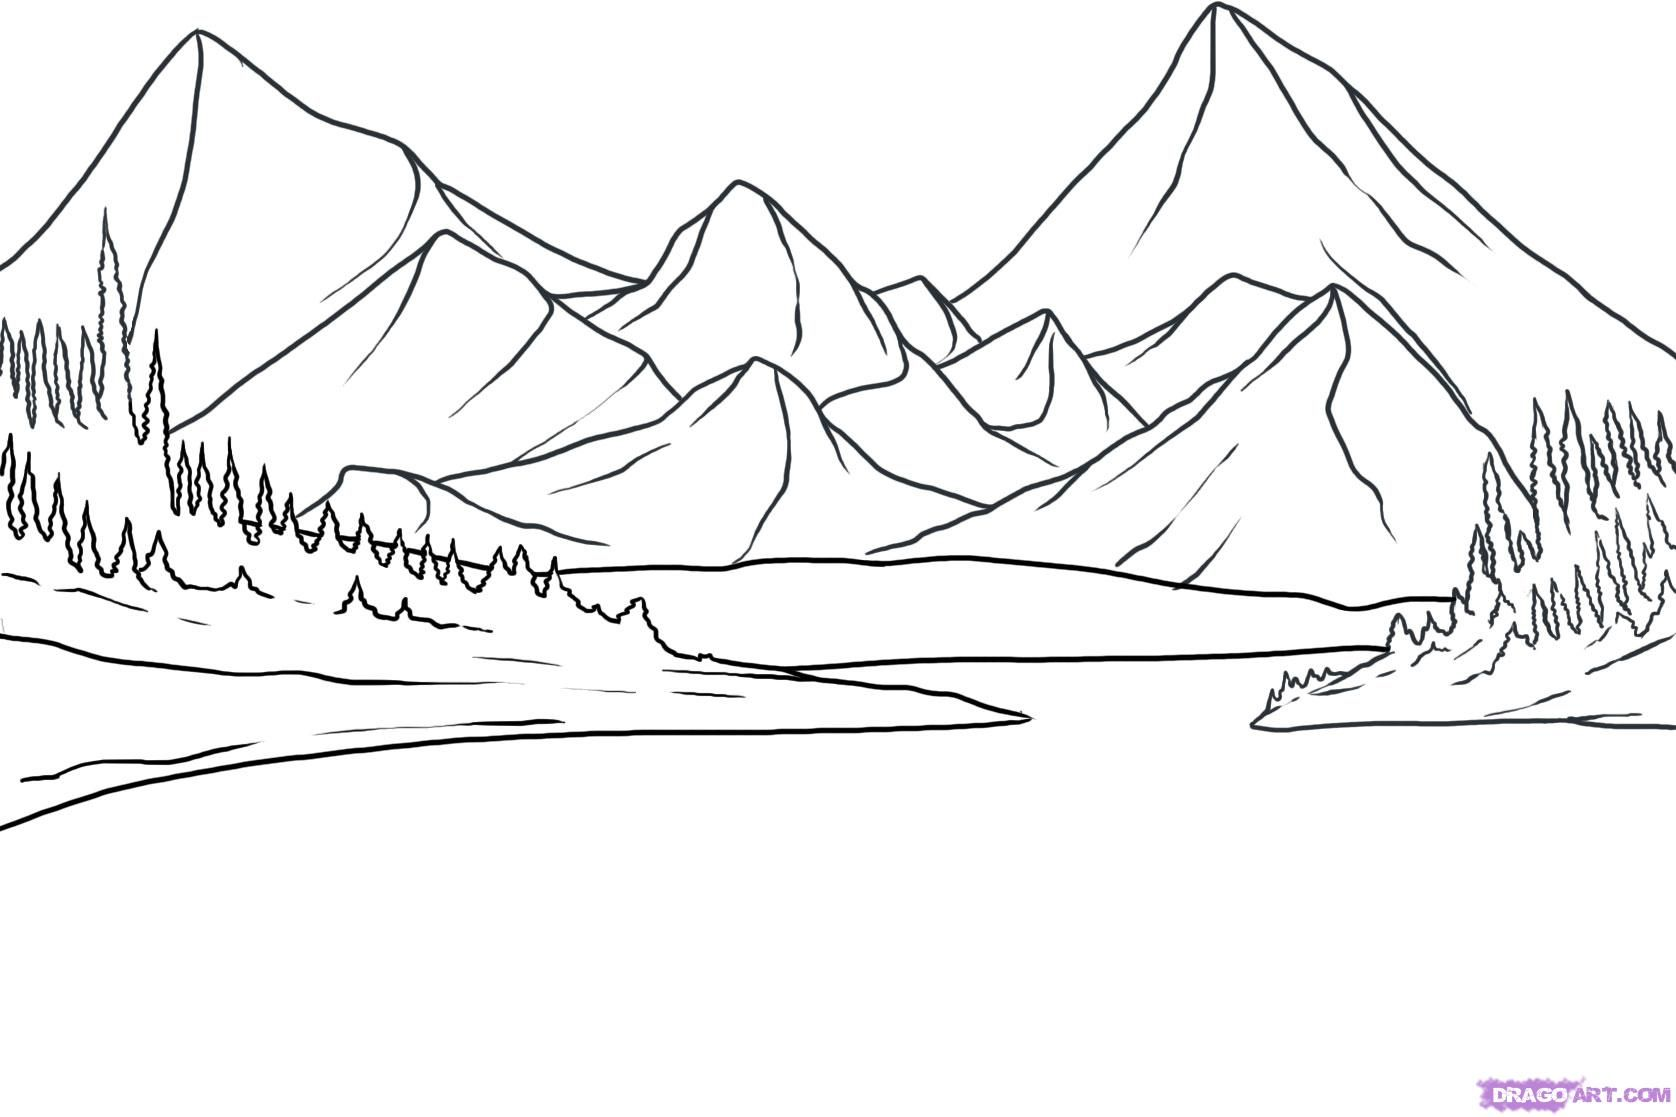 How to draw lakes near mountains with a pencil step by step